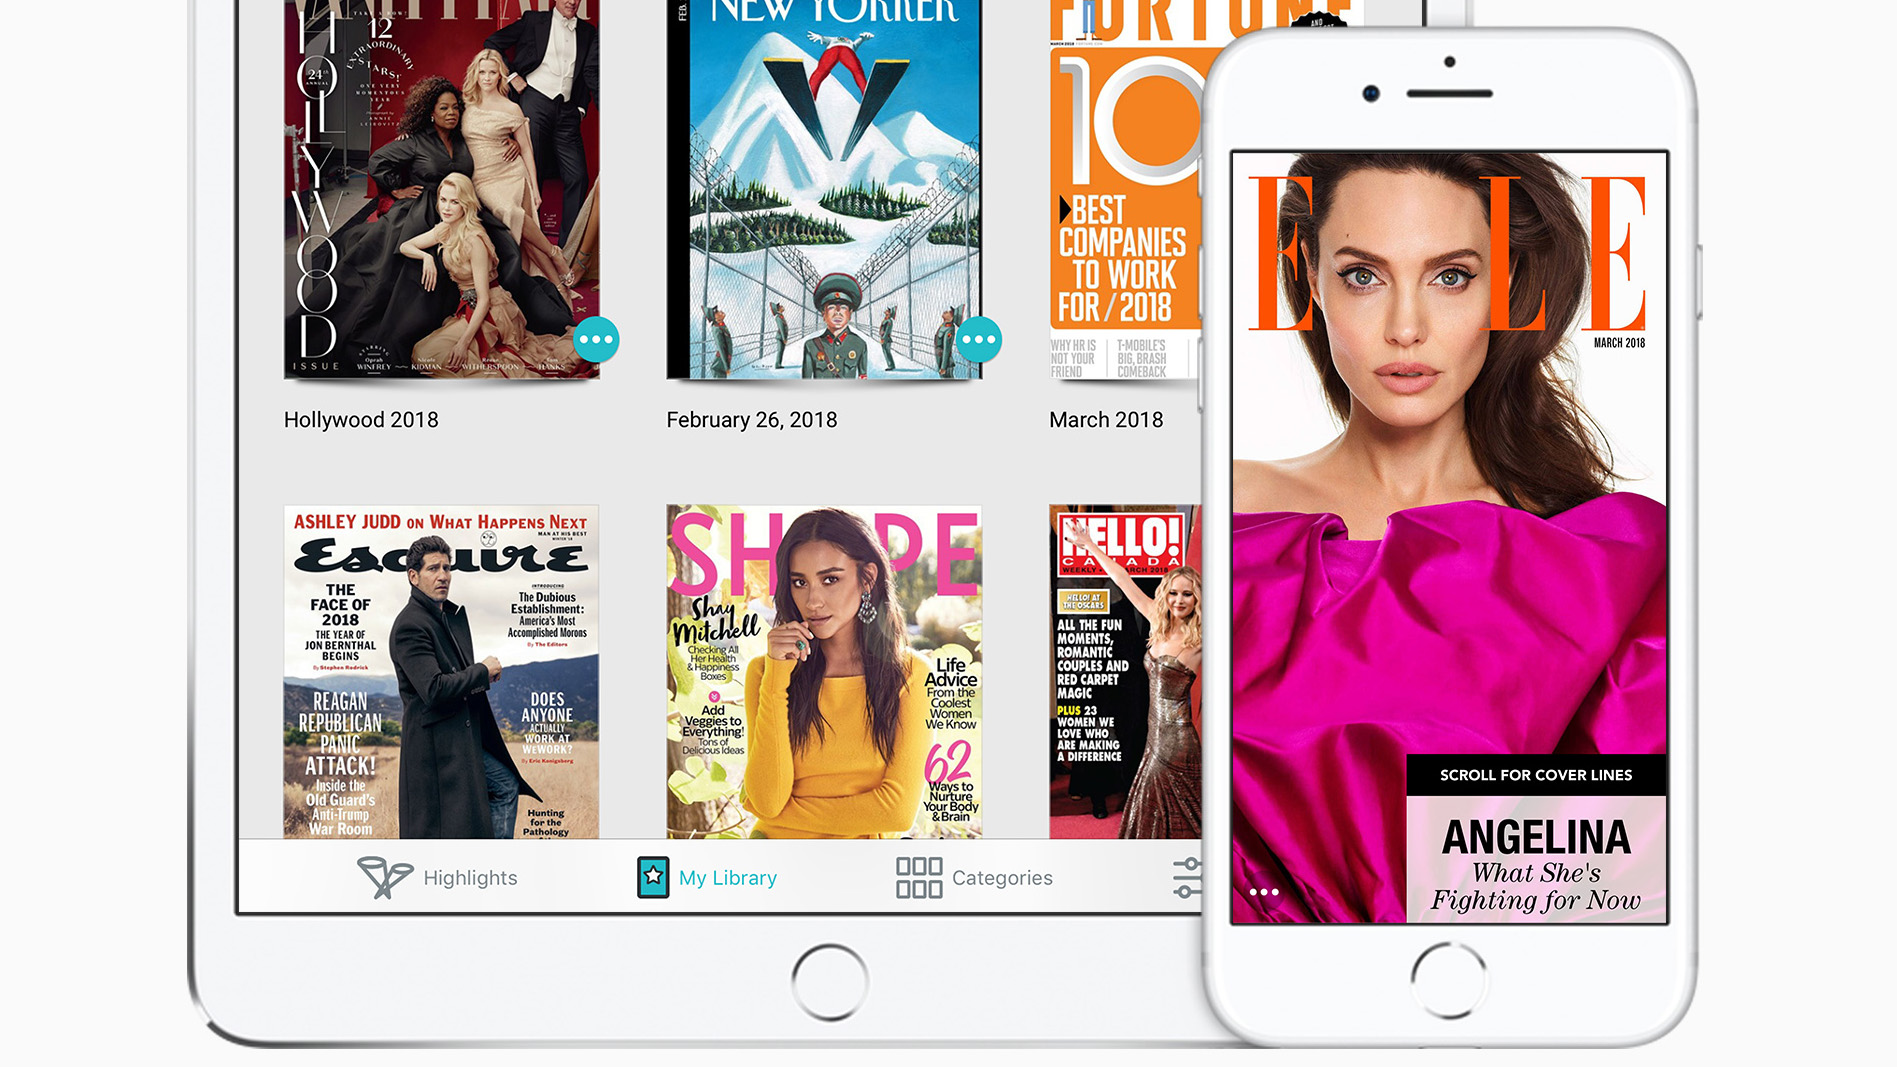 Apple announces plans to acquire digital magazine service Texture